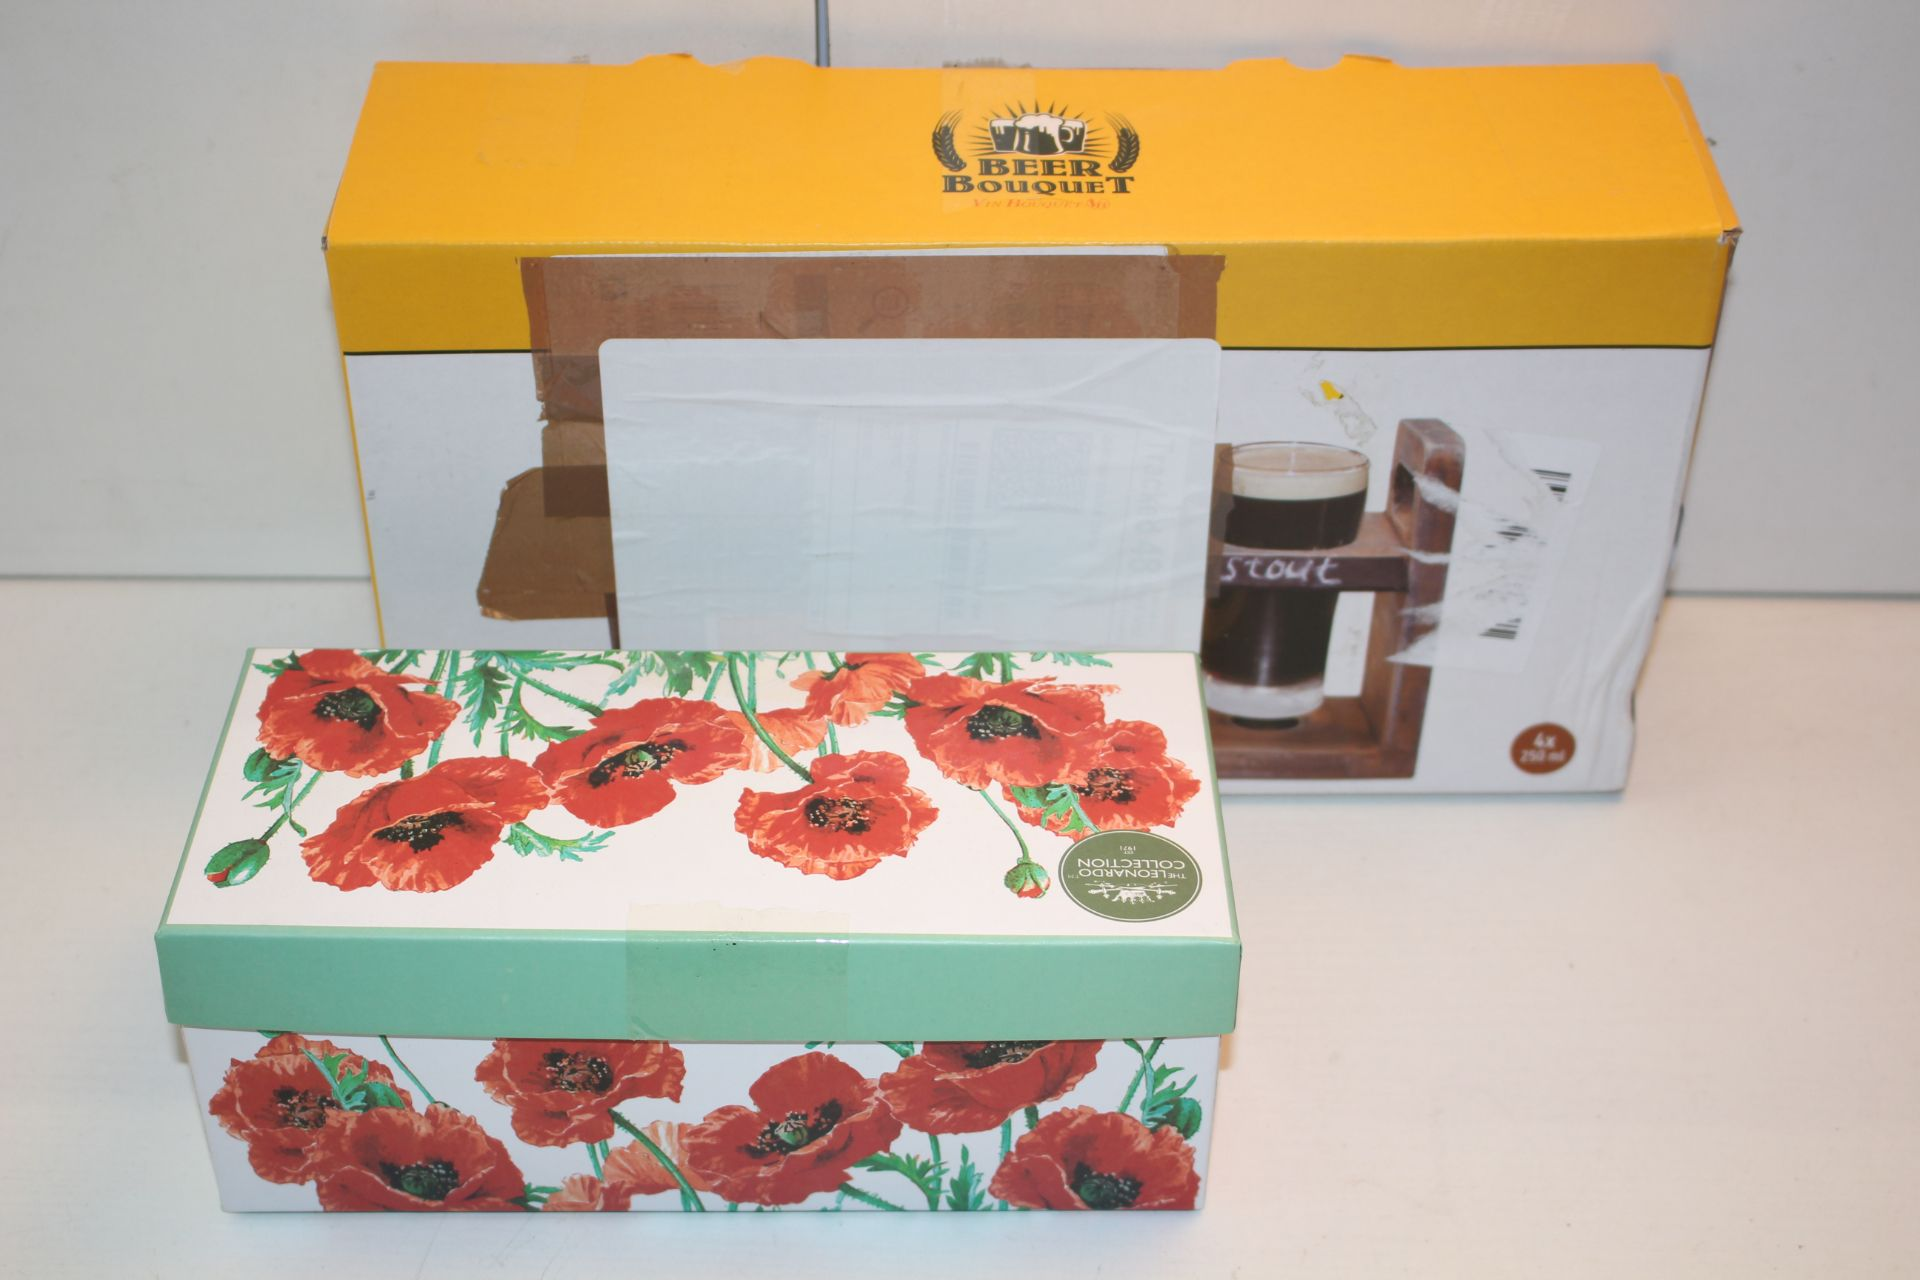 X2 BOXED ITEMS INCLUDING BEER BOUQUET AND ROSE CUP Condition ReportAppraisal Available on Request-